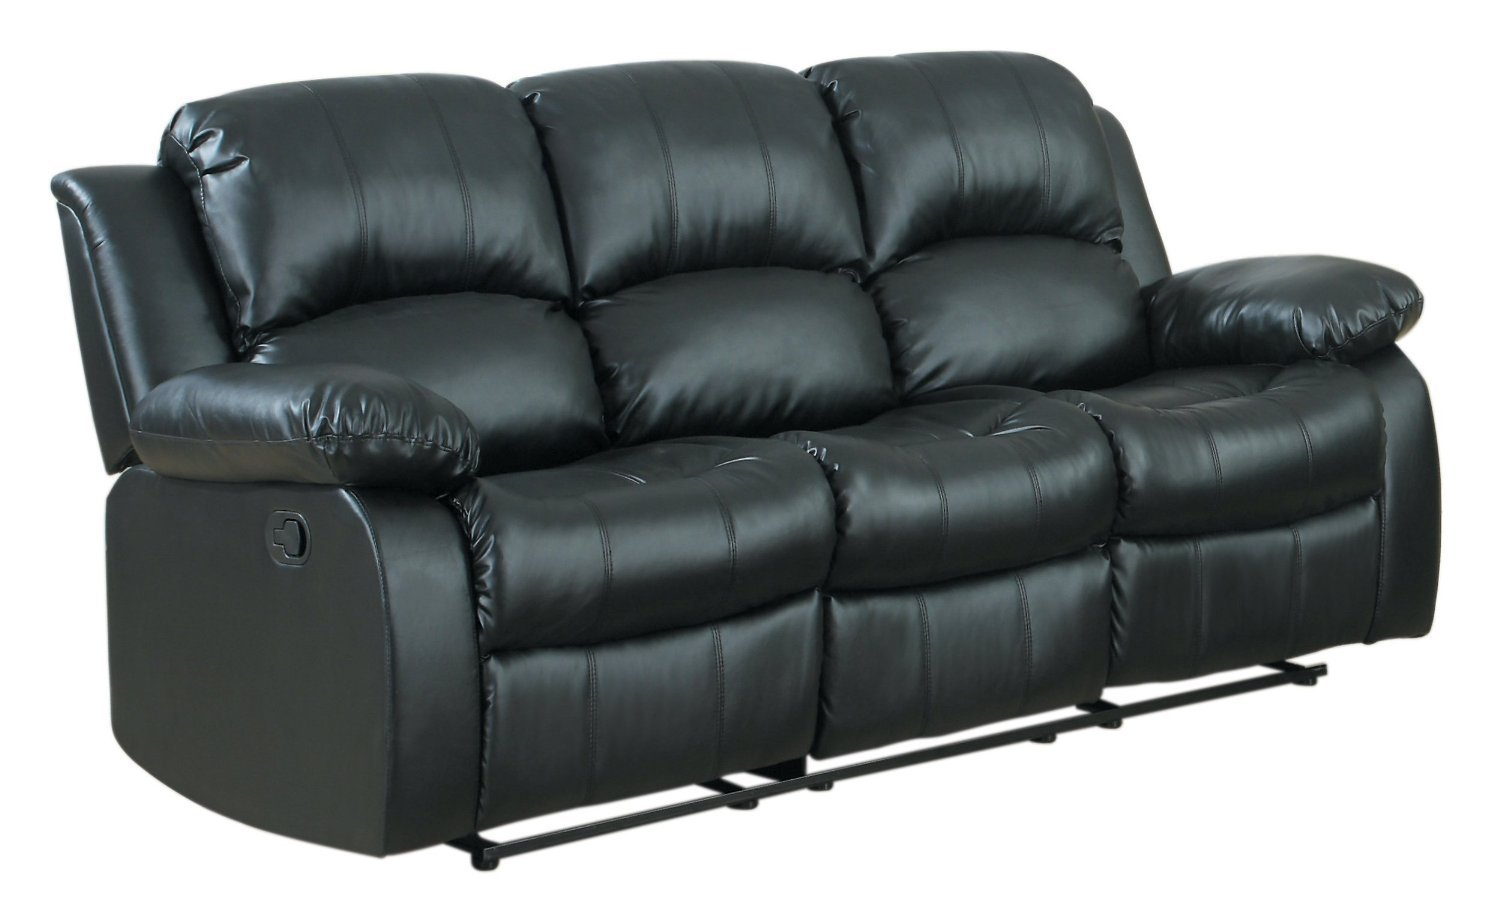 Best Recliner Reviews and Buying Guide 2